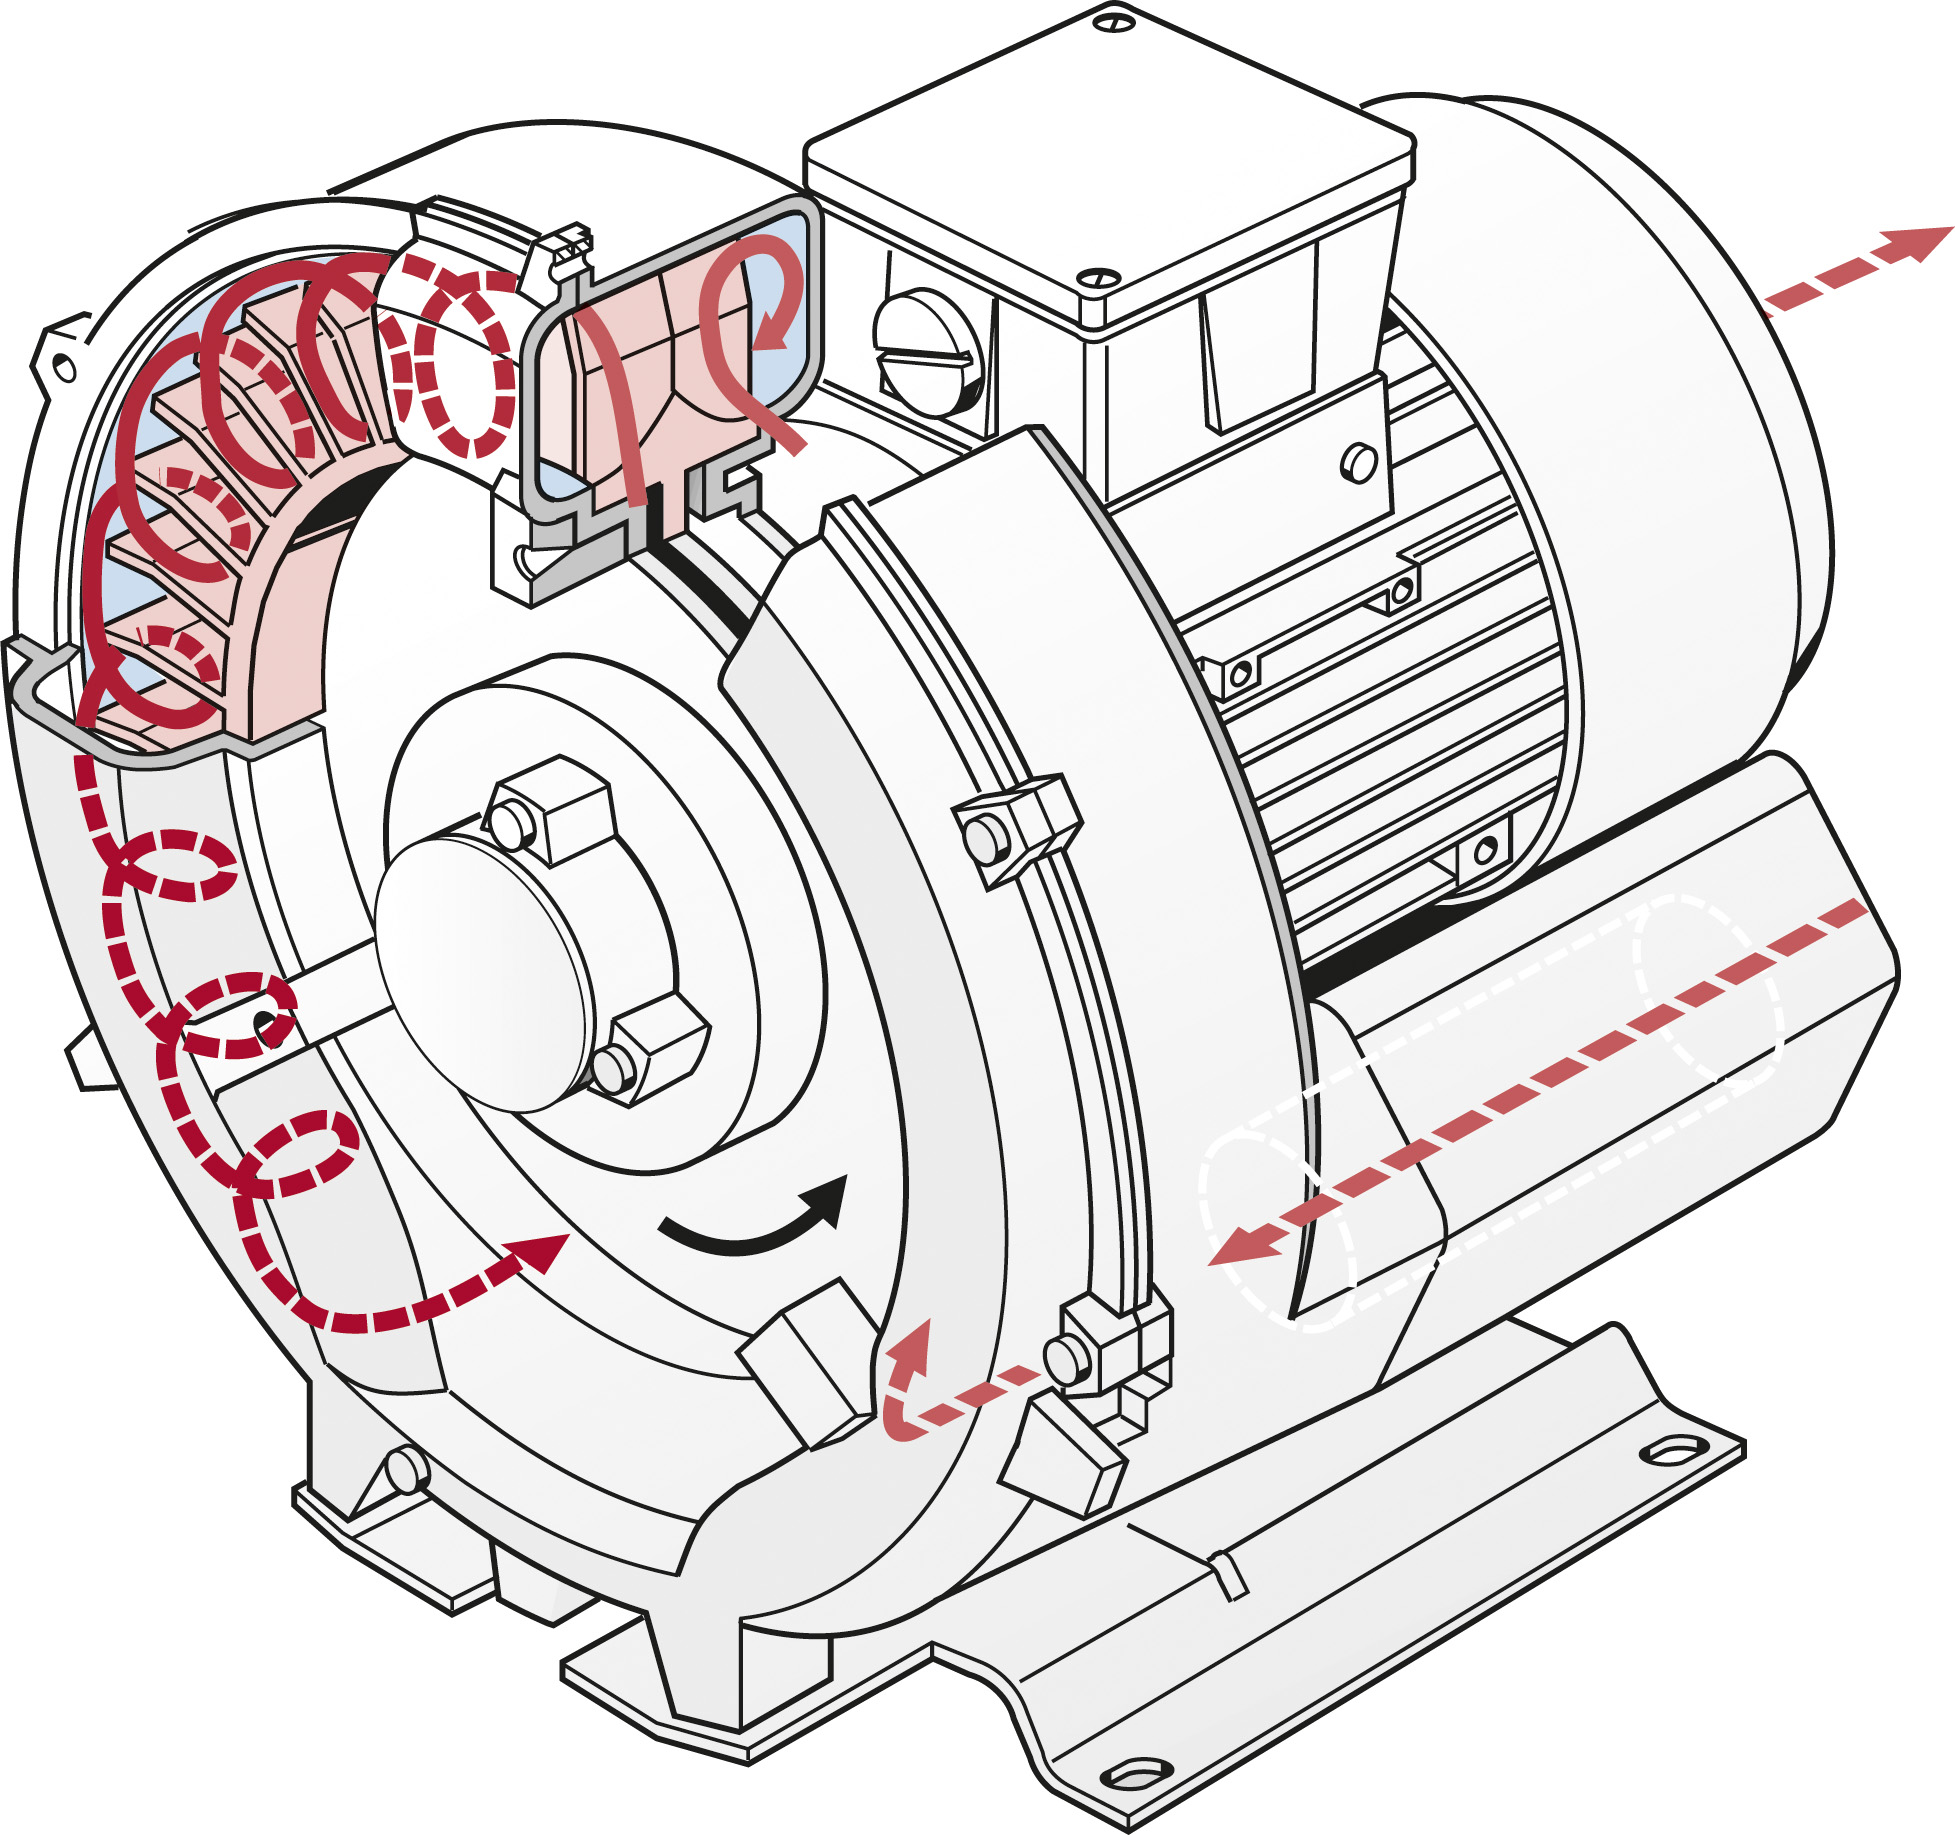 G Series Side Channel Blower Operating Principles